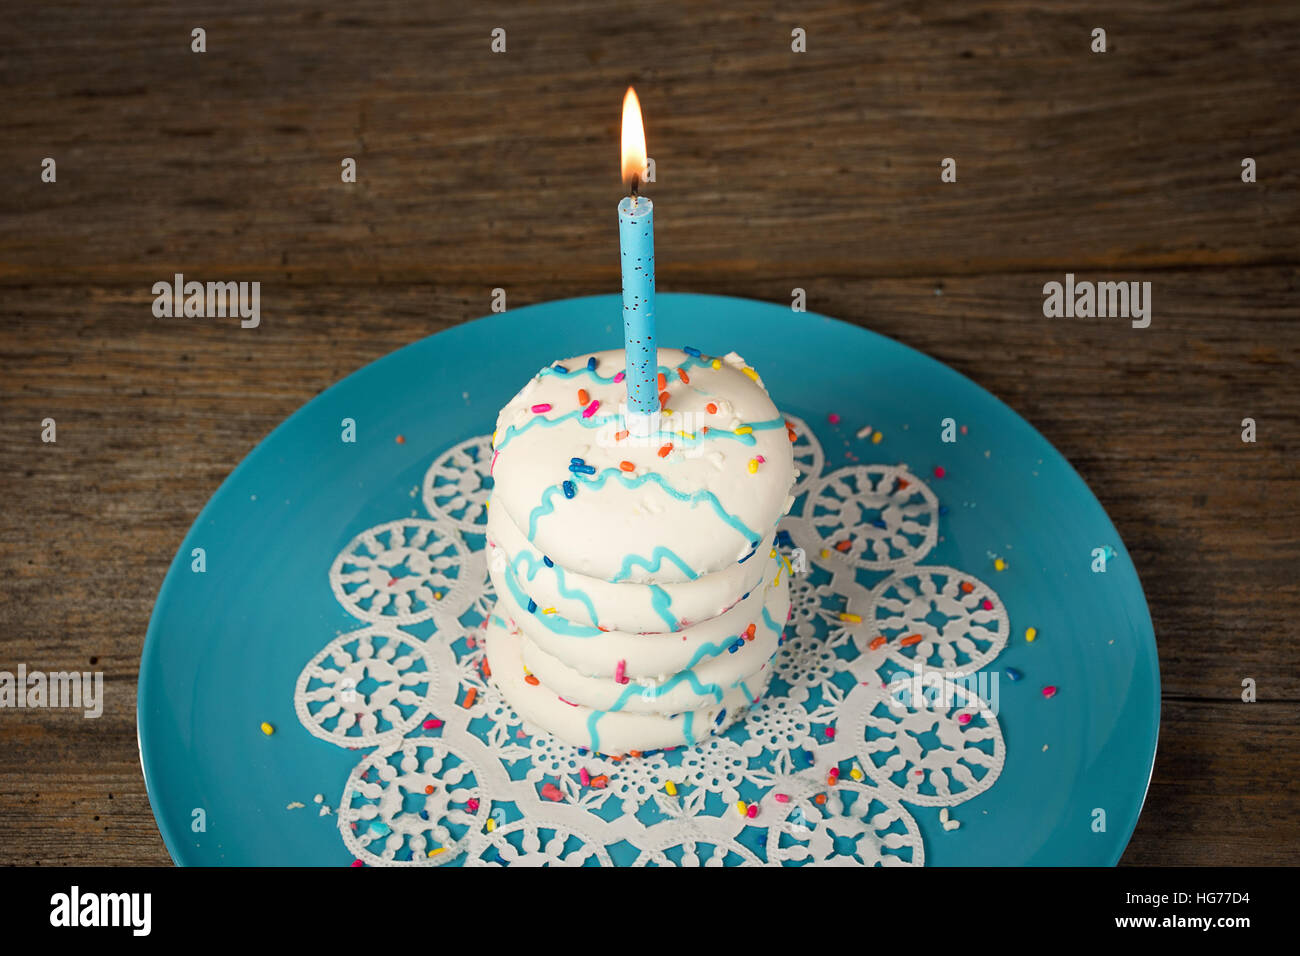 Lit Birthday Candle On Stack Of Sugar Cookies With Sprinkles